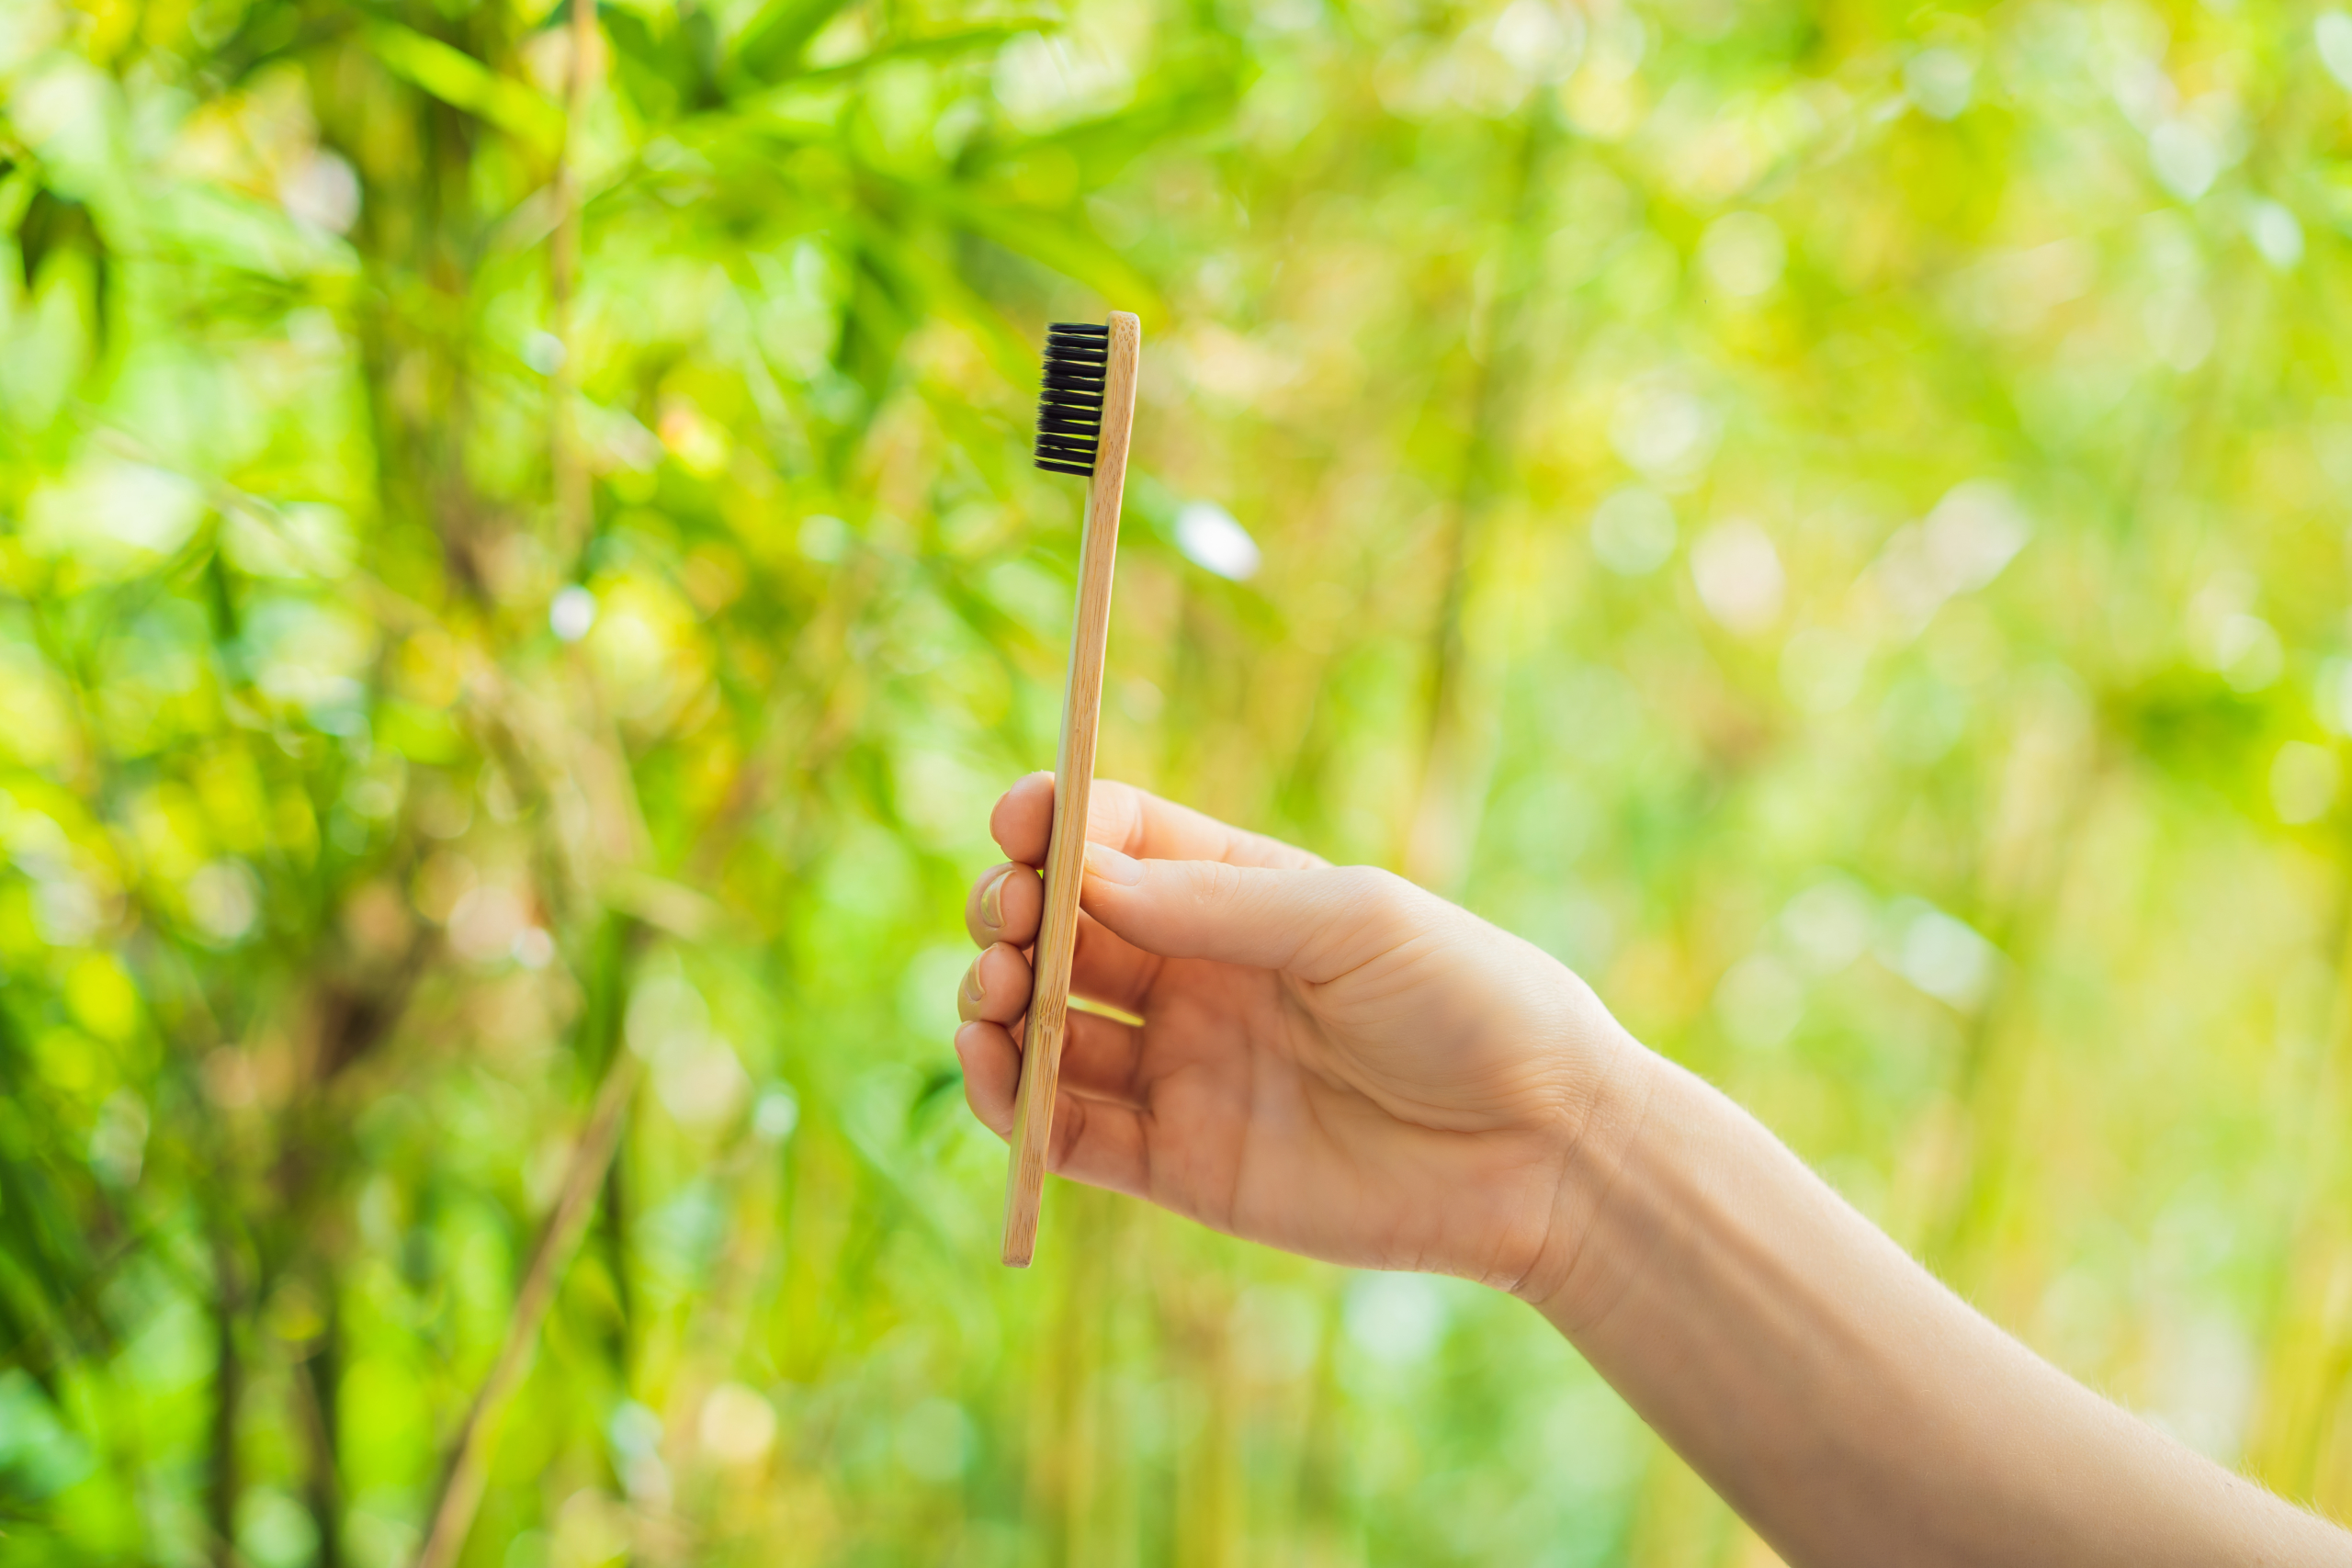 Bamboo toothbrush on a background of green growing bamboo